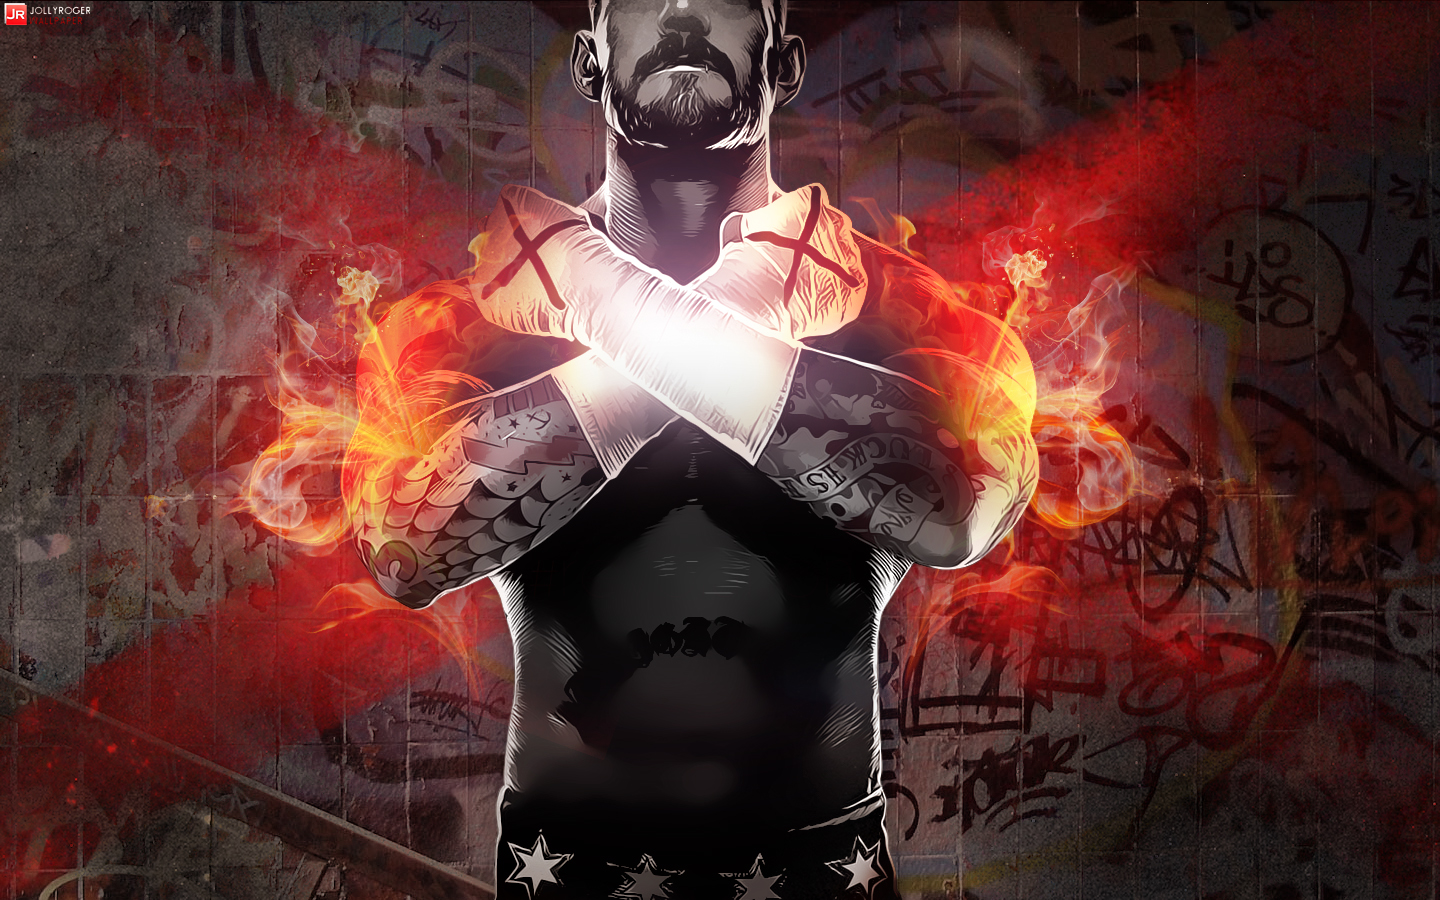 Wwe Wallpapers   FREE DOWNLOAD HD WALLPAPERS 1440x900